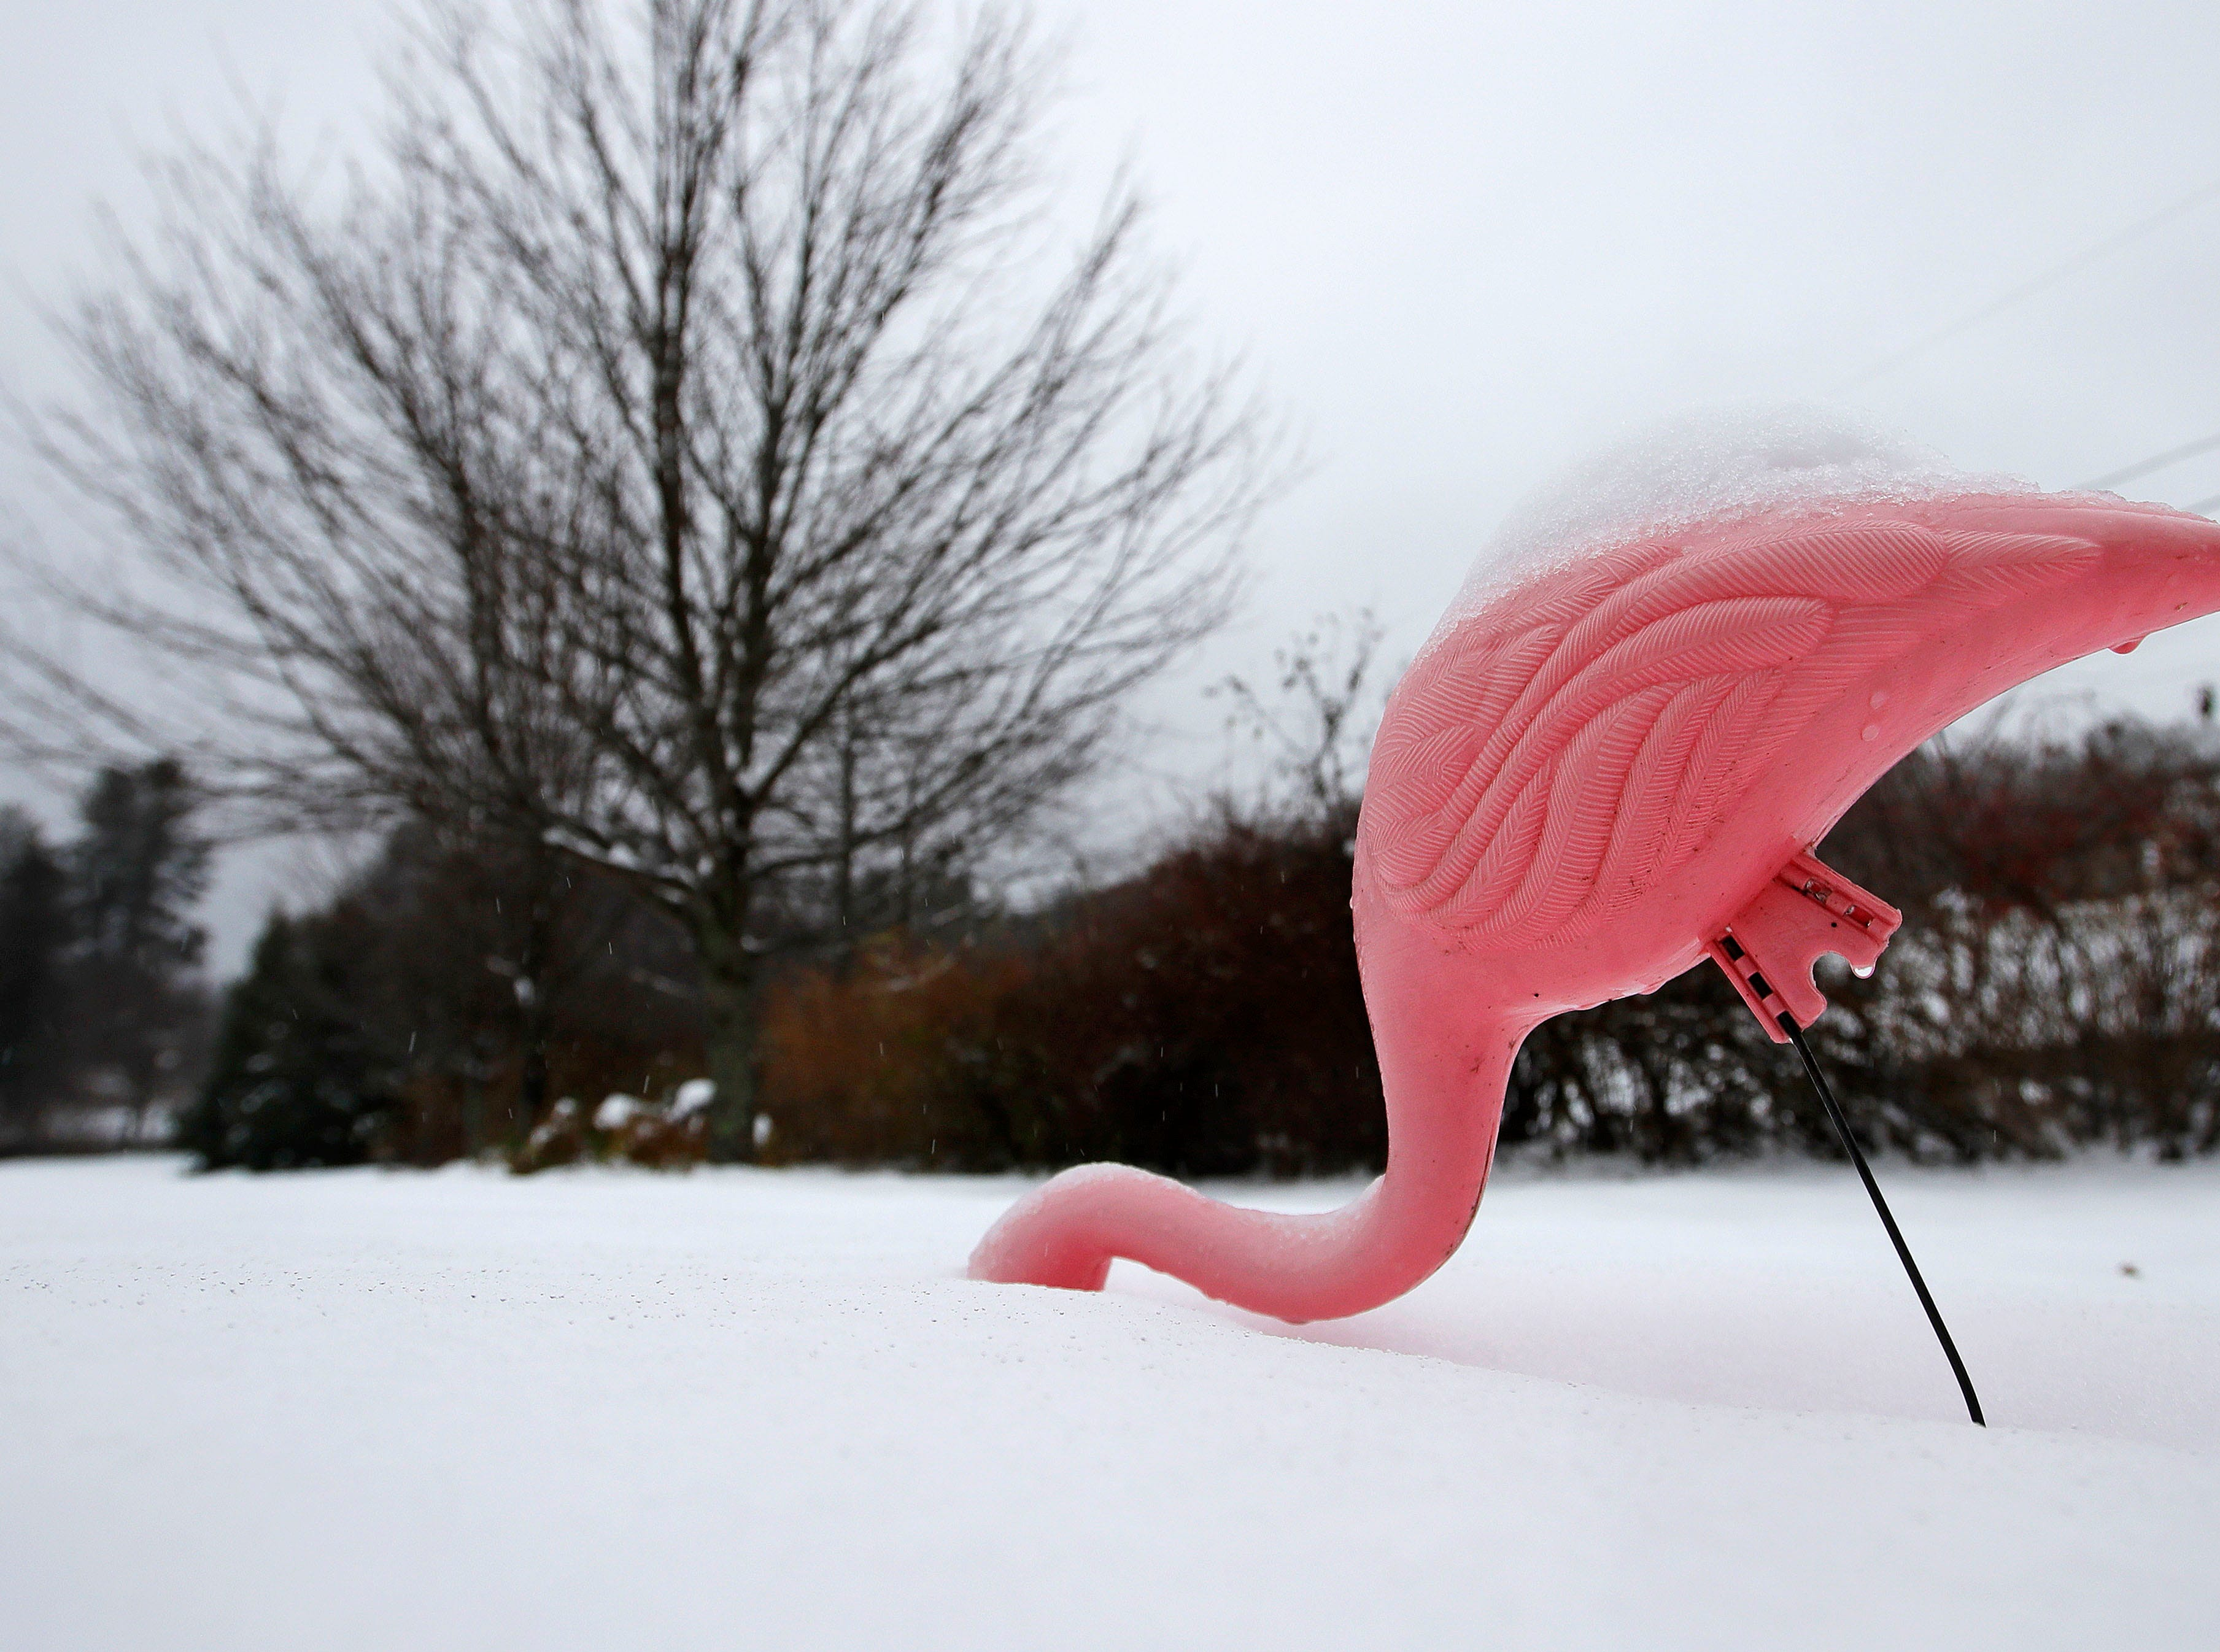 A flamingo lawn ornament is covered with slushy snow after an overnight storm in East Derry, N.H., Friday, Nov. 16, 2018. Southern New Hampshire received about five inches of snow before turning to rain later in the day.